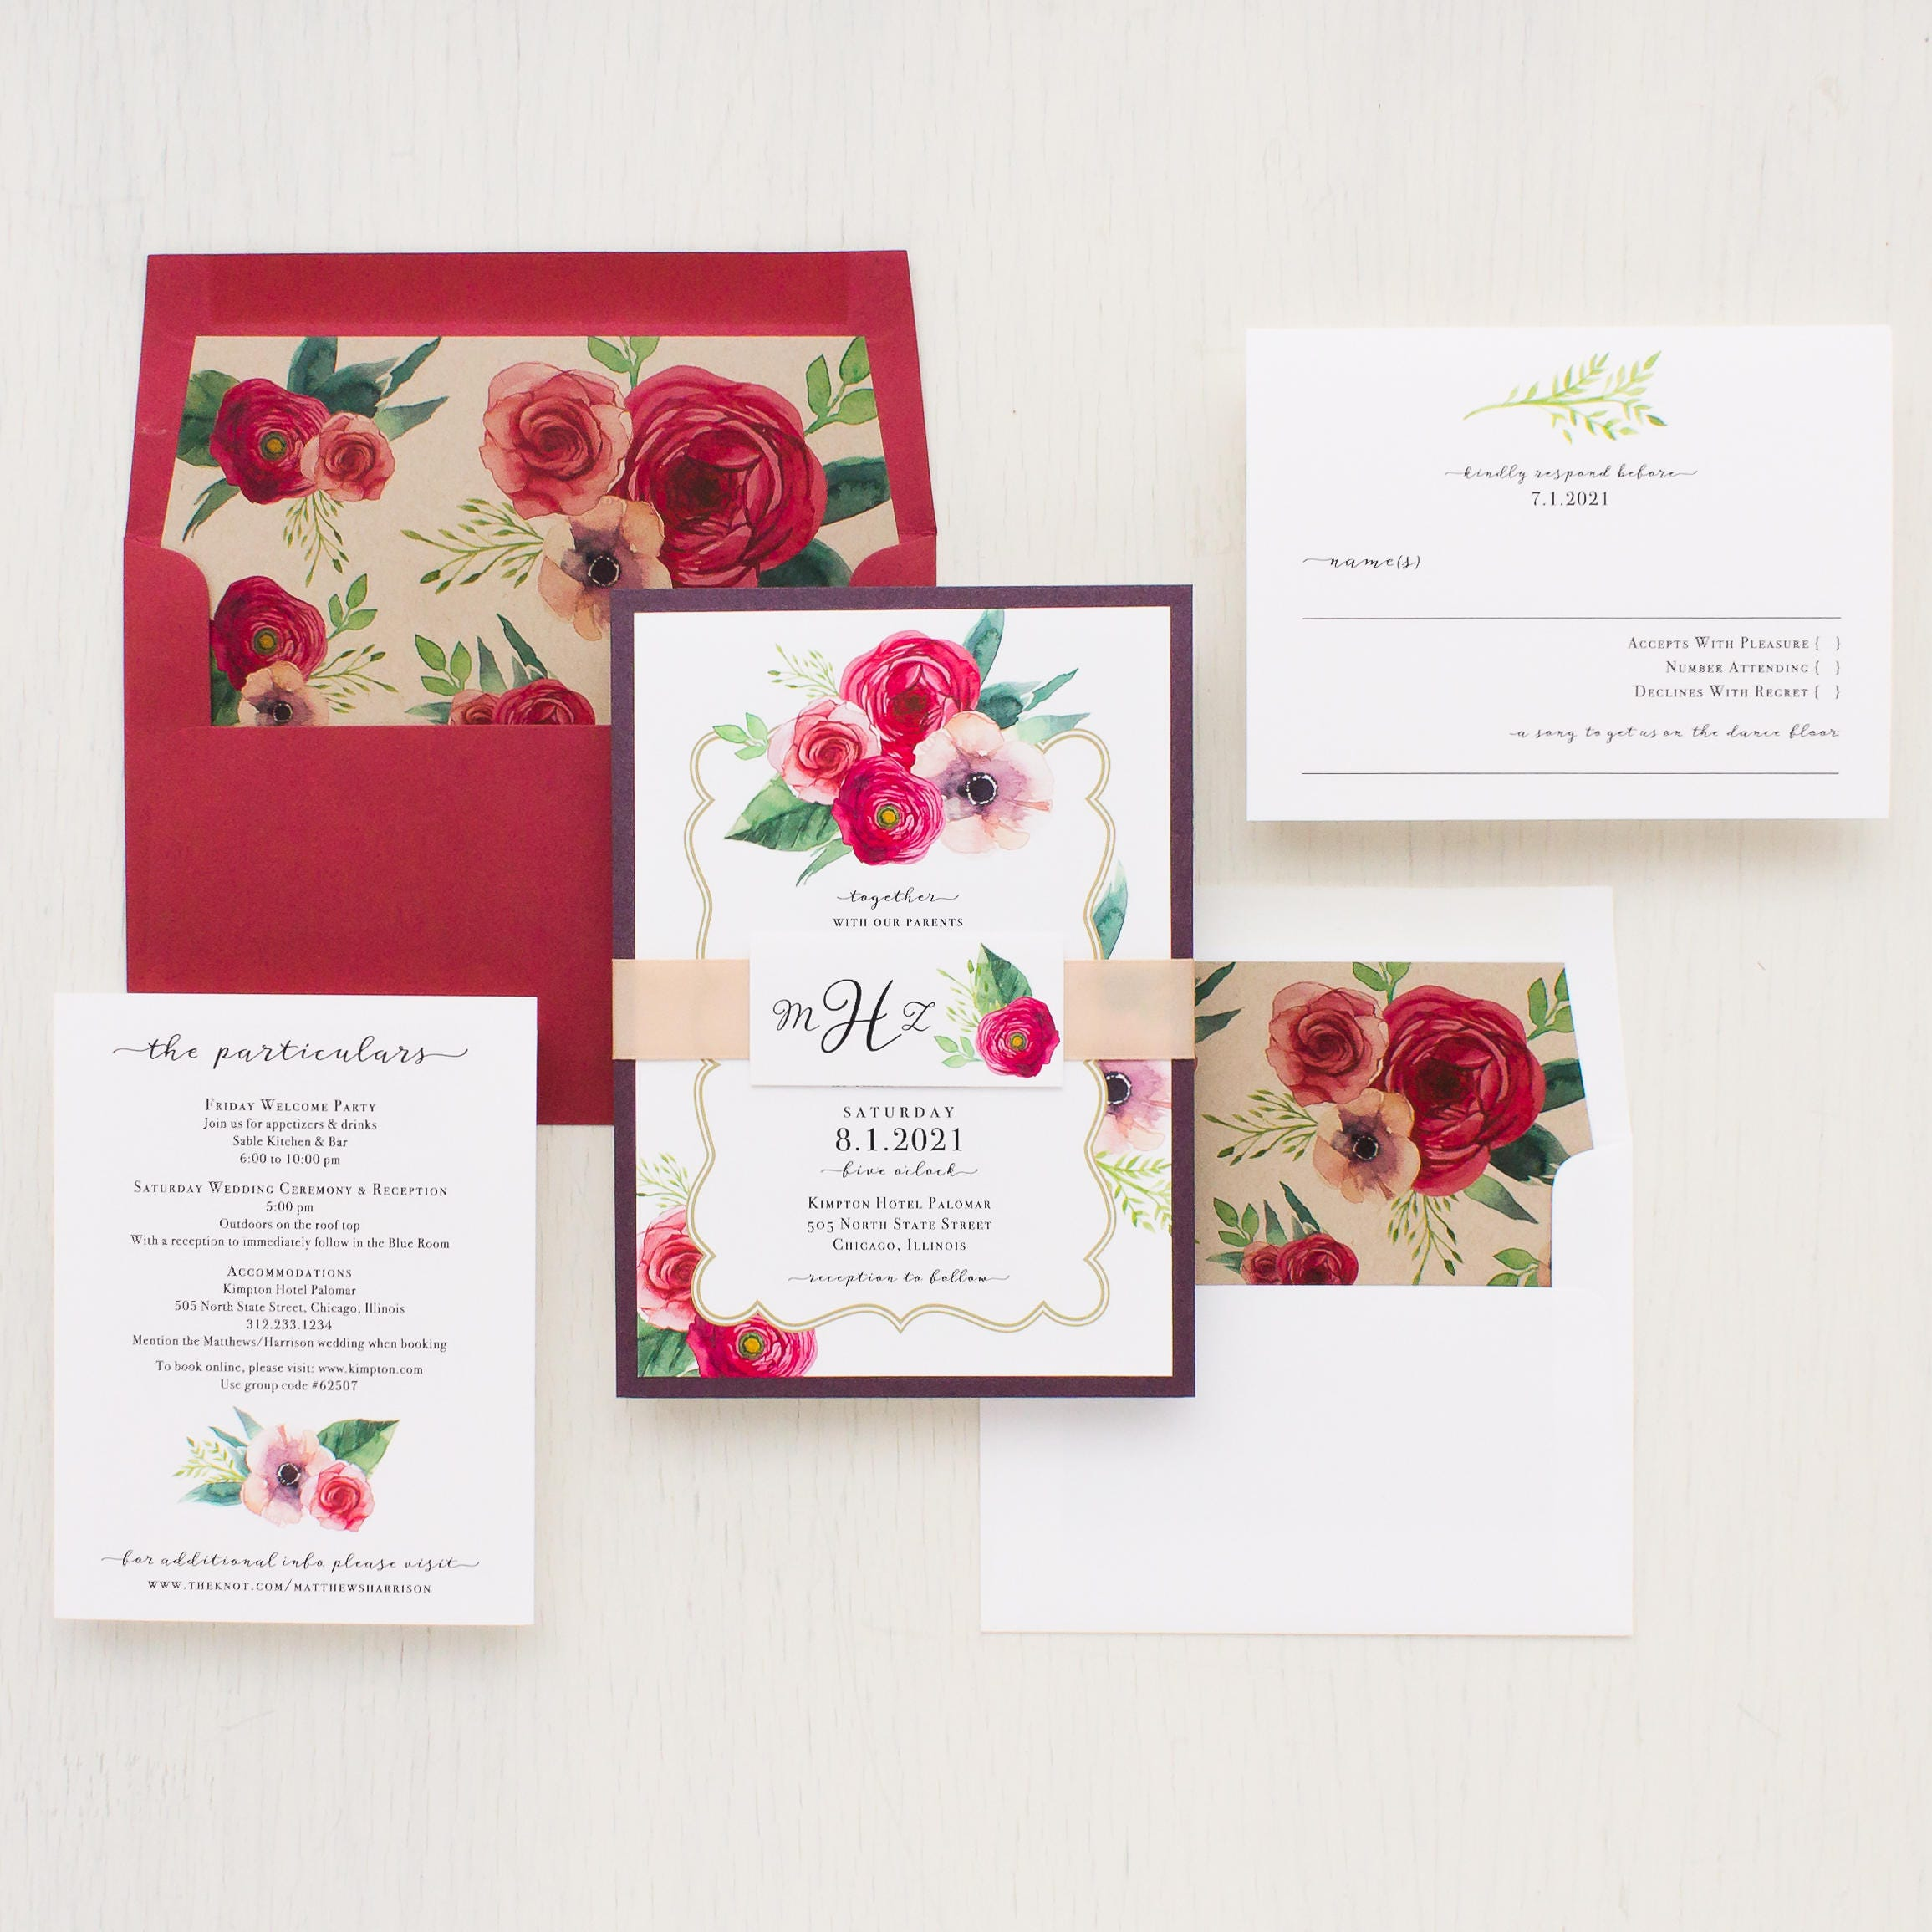 Floral Classic Wedding Invitations Garden Roses Taupe Red | Etsy